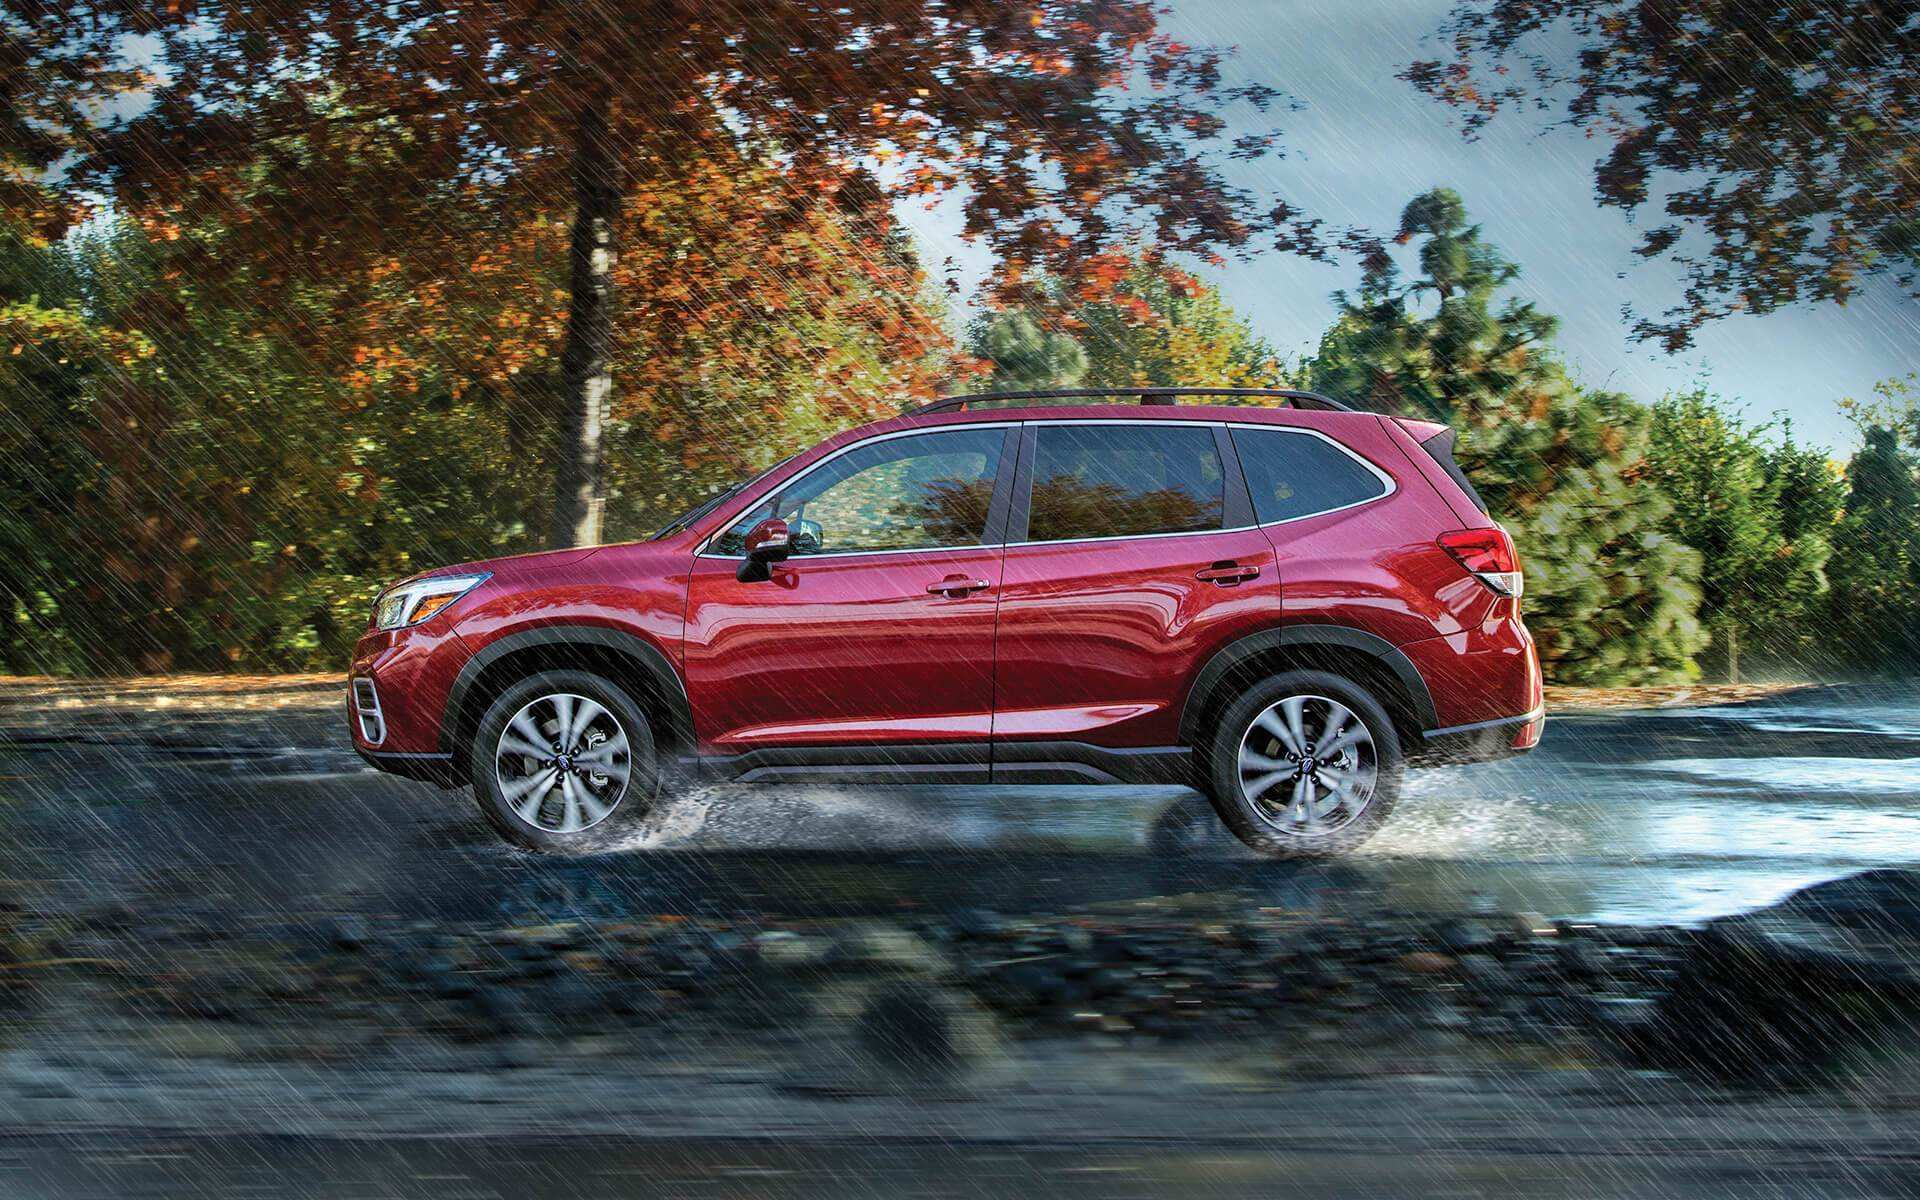 93 Great Subaru Forester 2019 Green Spy Shoot Overview for Subaru Forester 2019 Green Spy Shoot